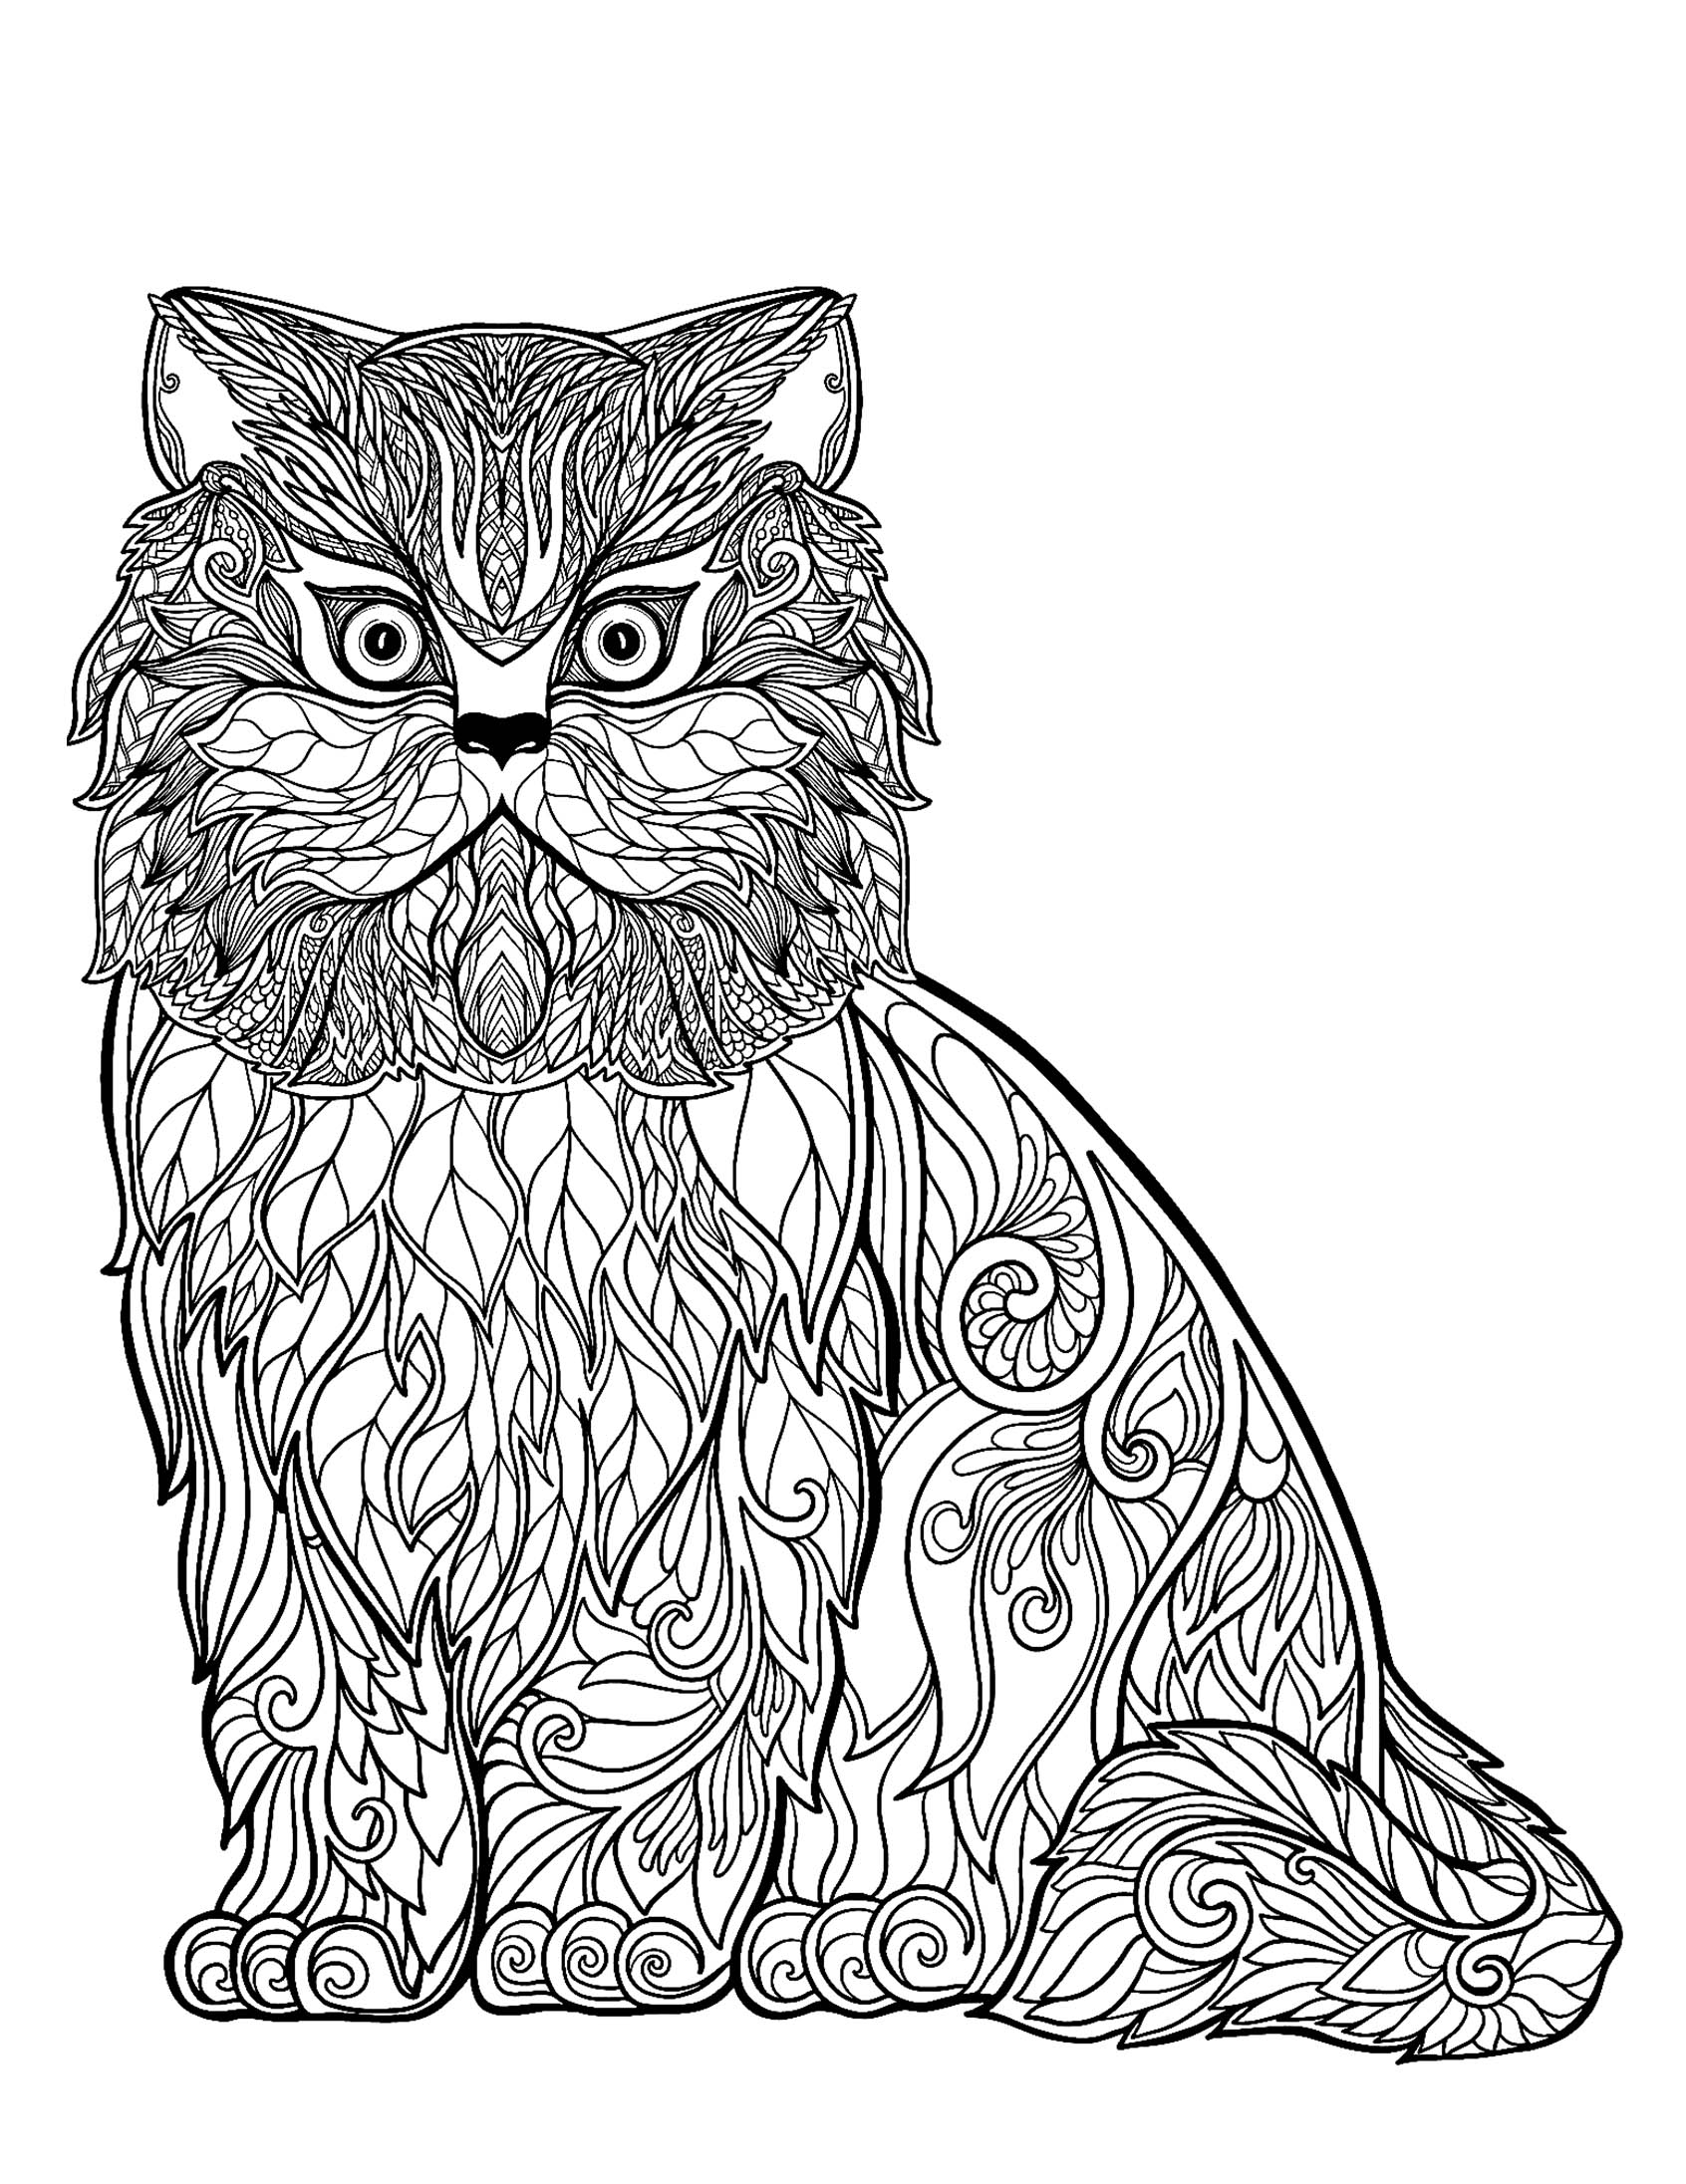 colouring pages of cats cat free to color for kids wise cat full of details of cats colouring pages